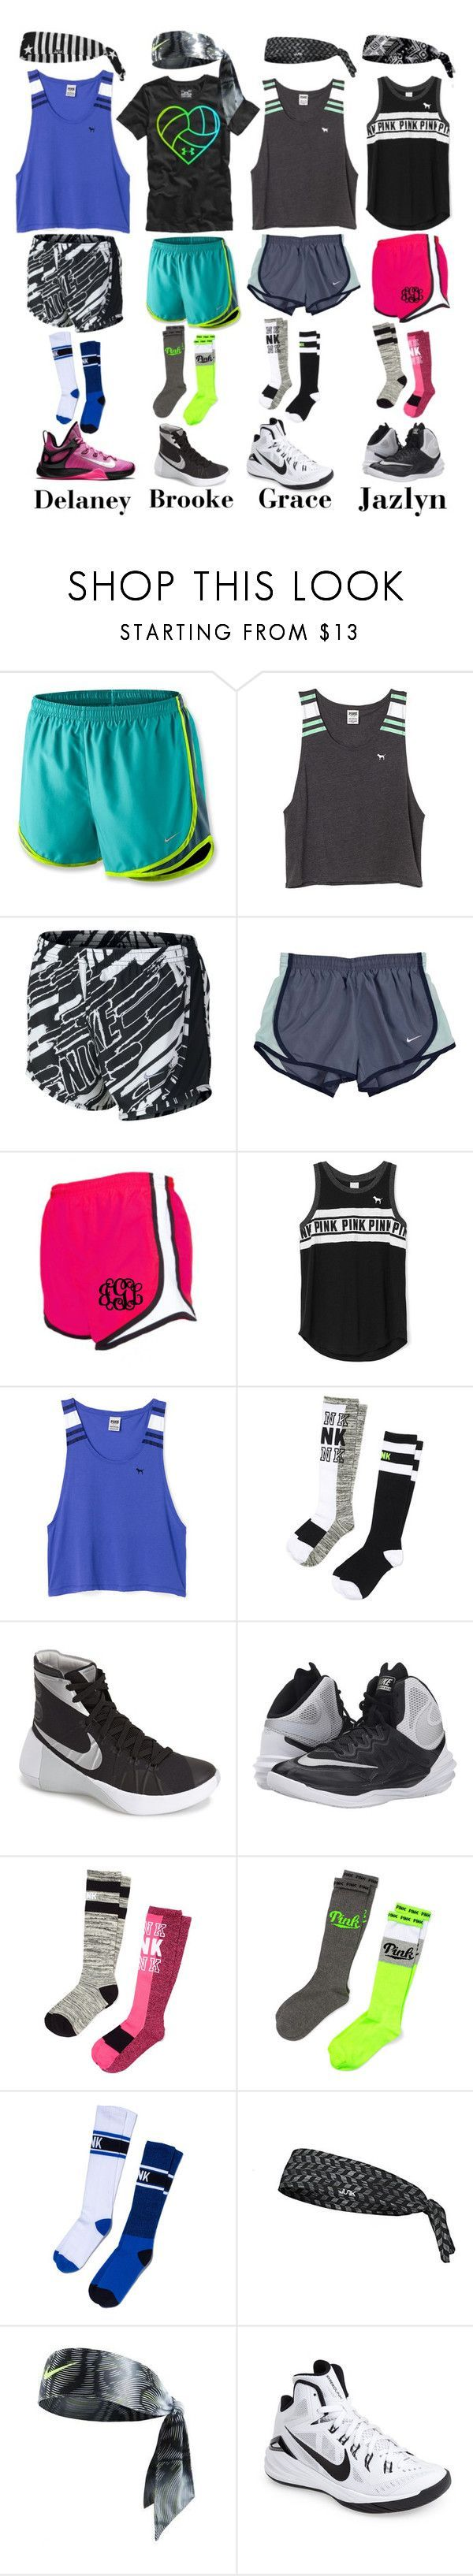 """Basketball Practice with my Favs"" by jmsmith462 ❤ liked on Polyvore featuring NIKE and Victoria's Secret PINK"